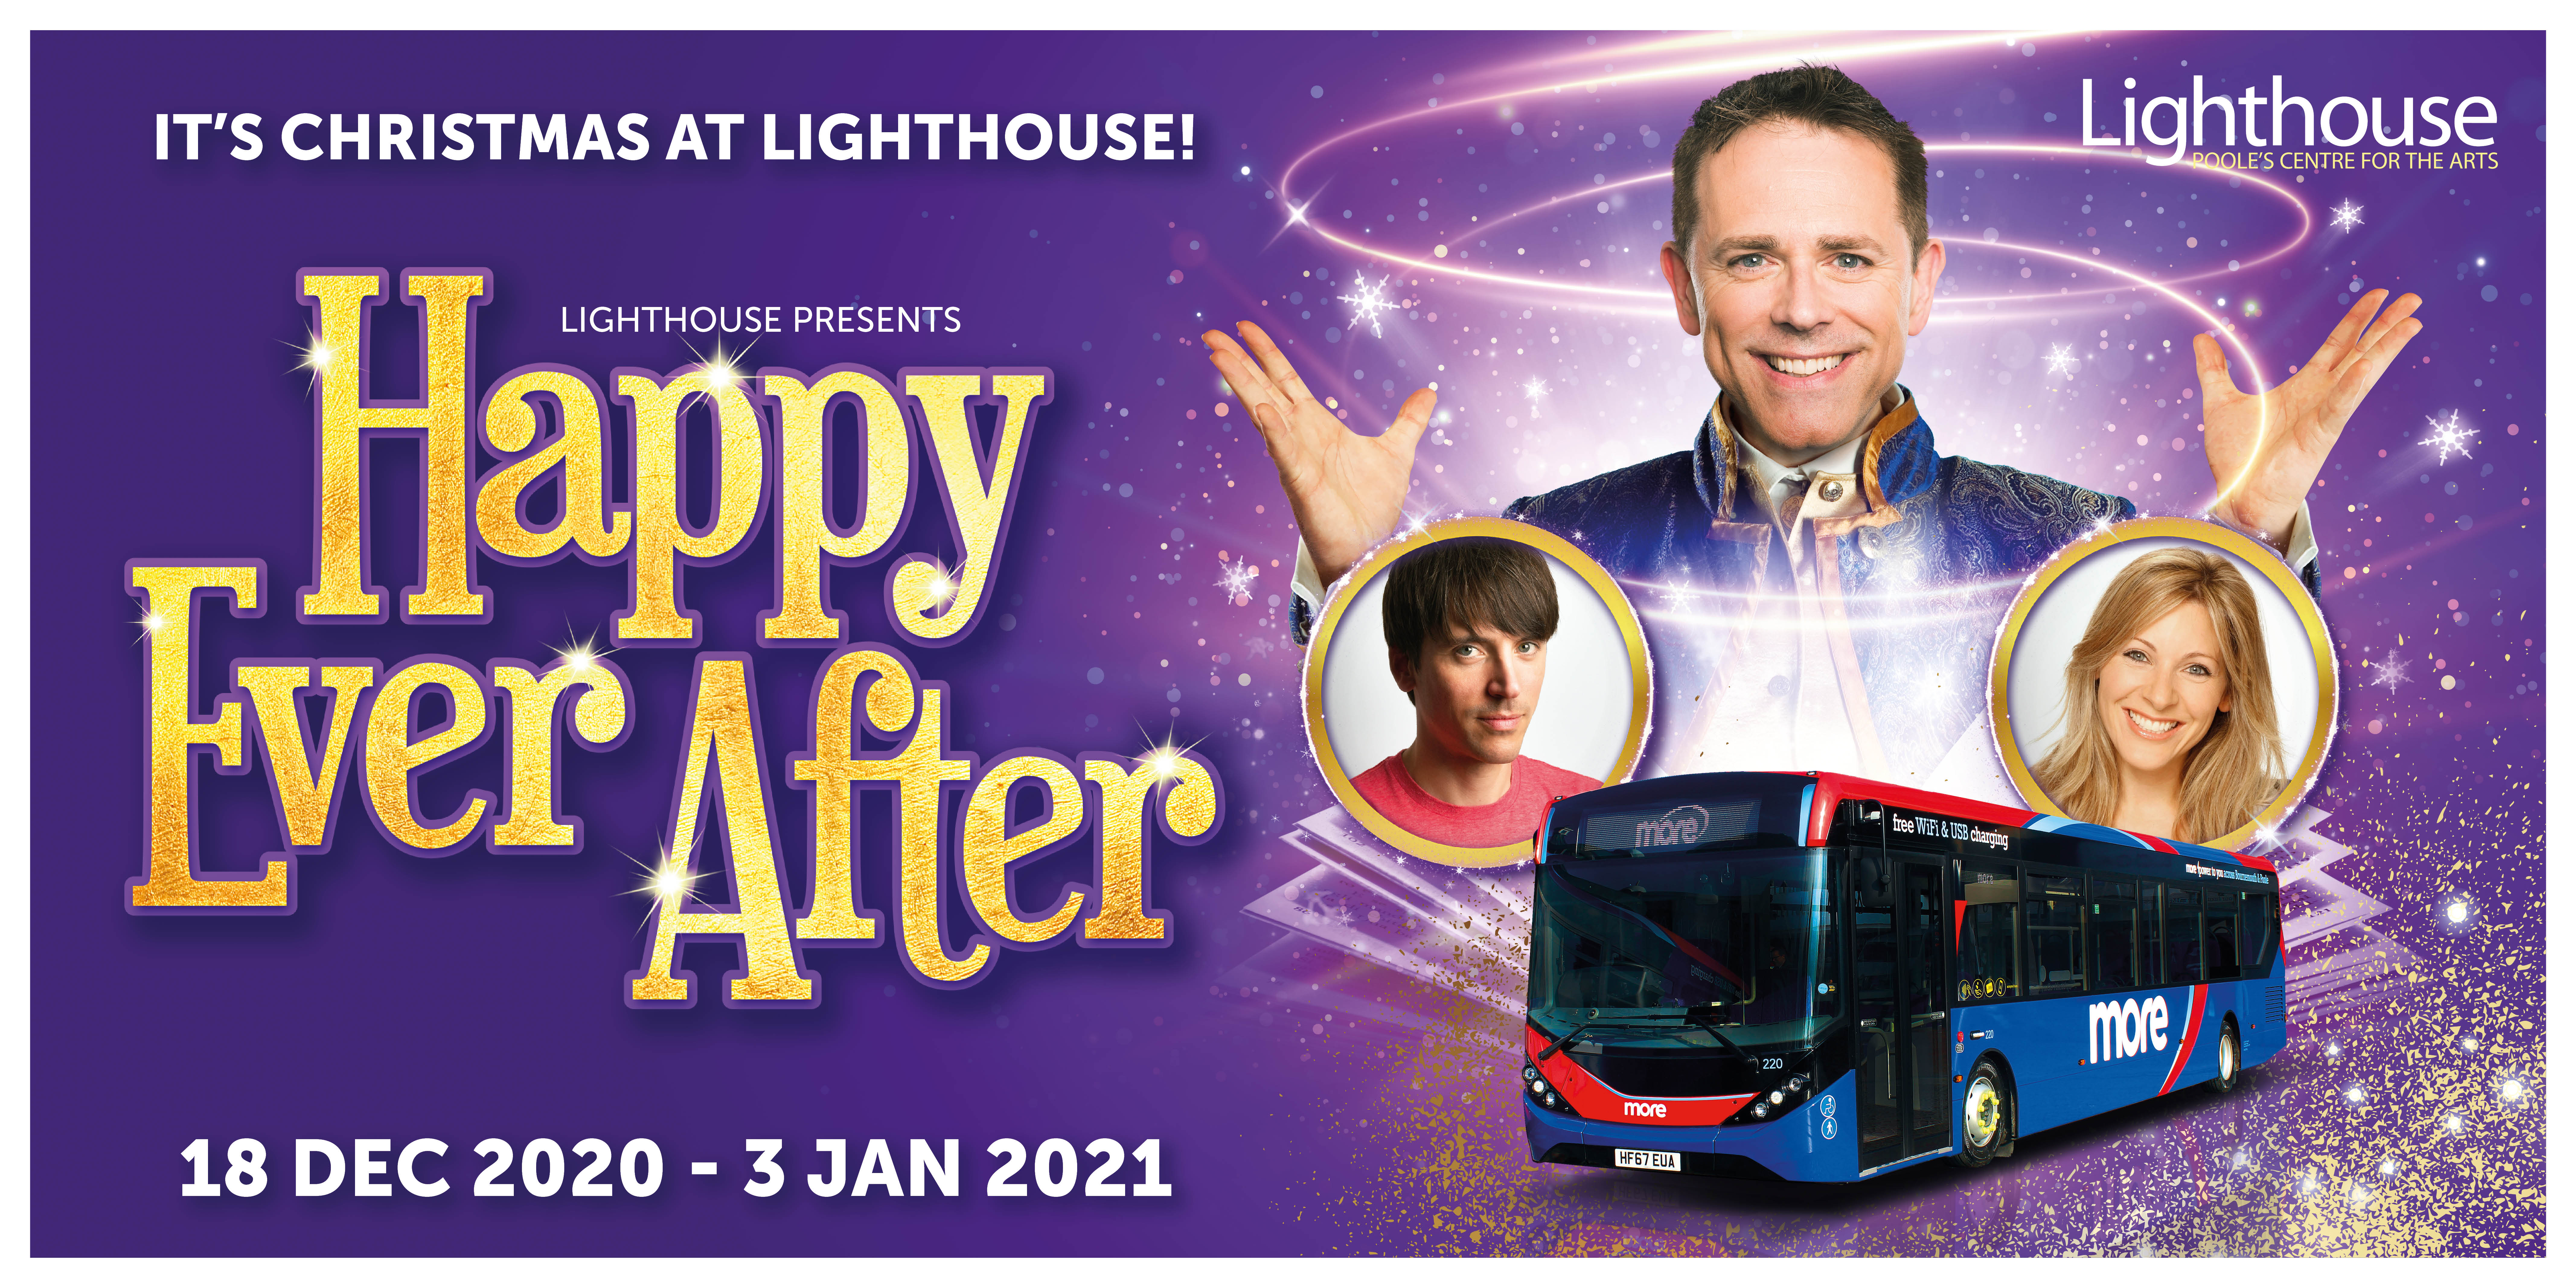 Image of three main characters with a morebus and text reading, 'It's Christmas at lighthouse! Lighthouse presents Happy Ever After. 18th Dec 2020 - 3rd Jan 2021'